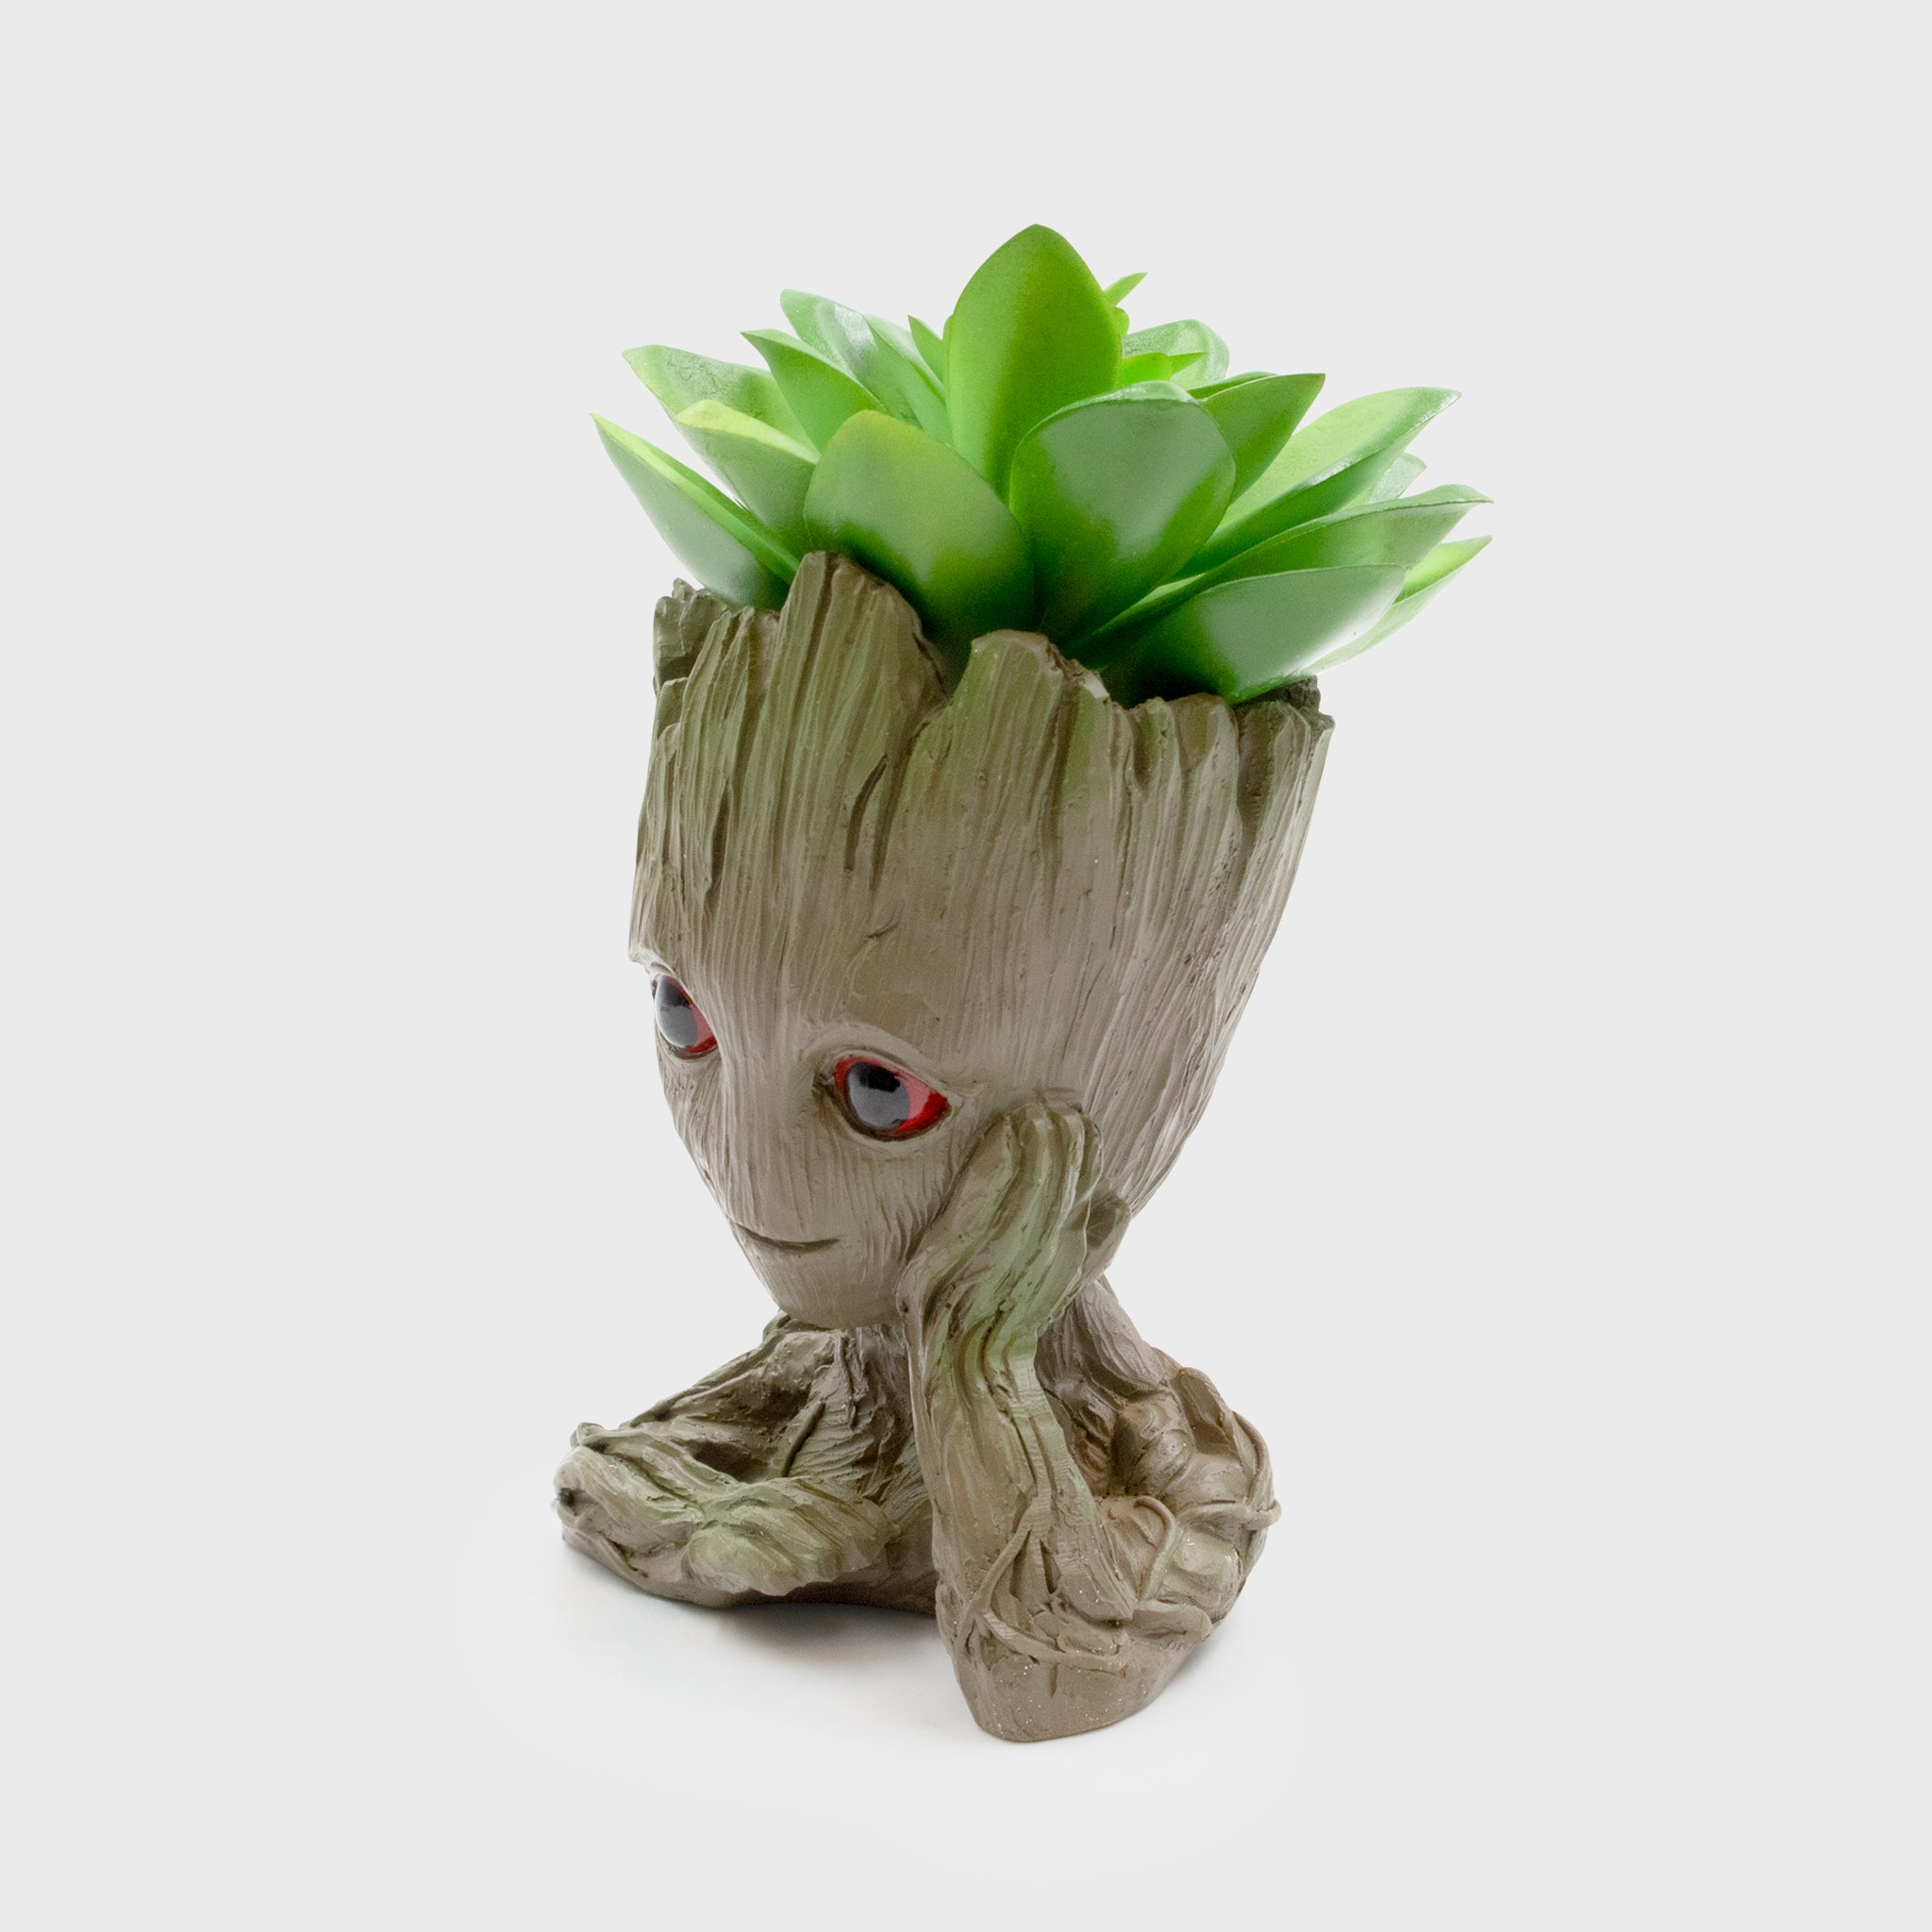 Marvel - Guardian's of the Galaxy Groot Planter